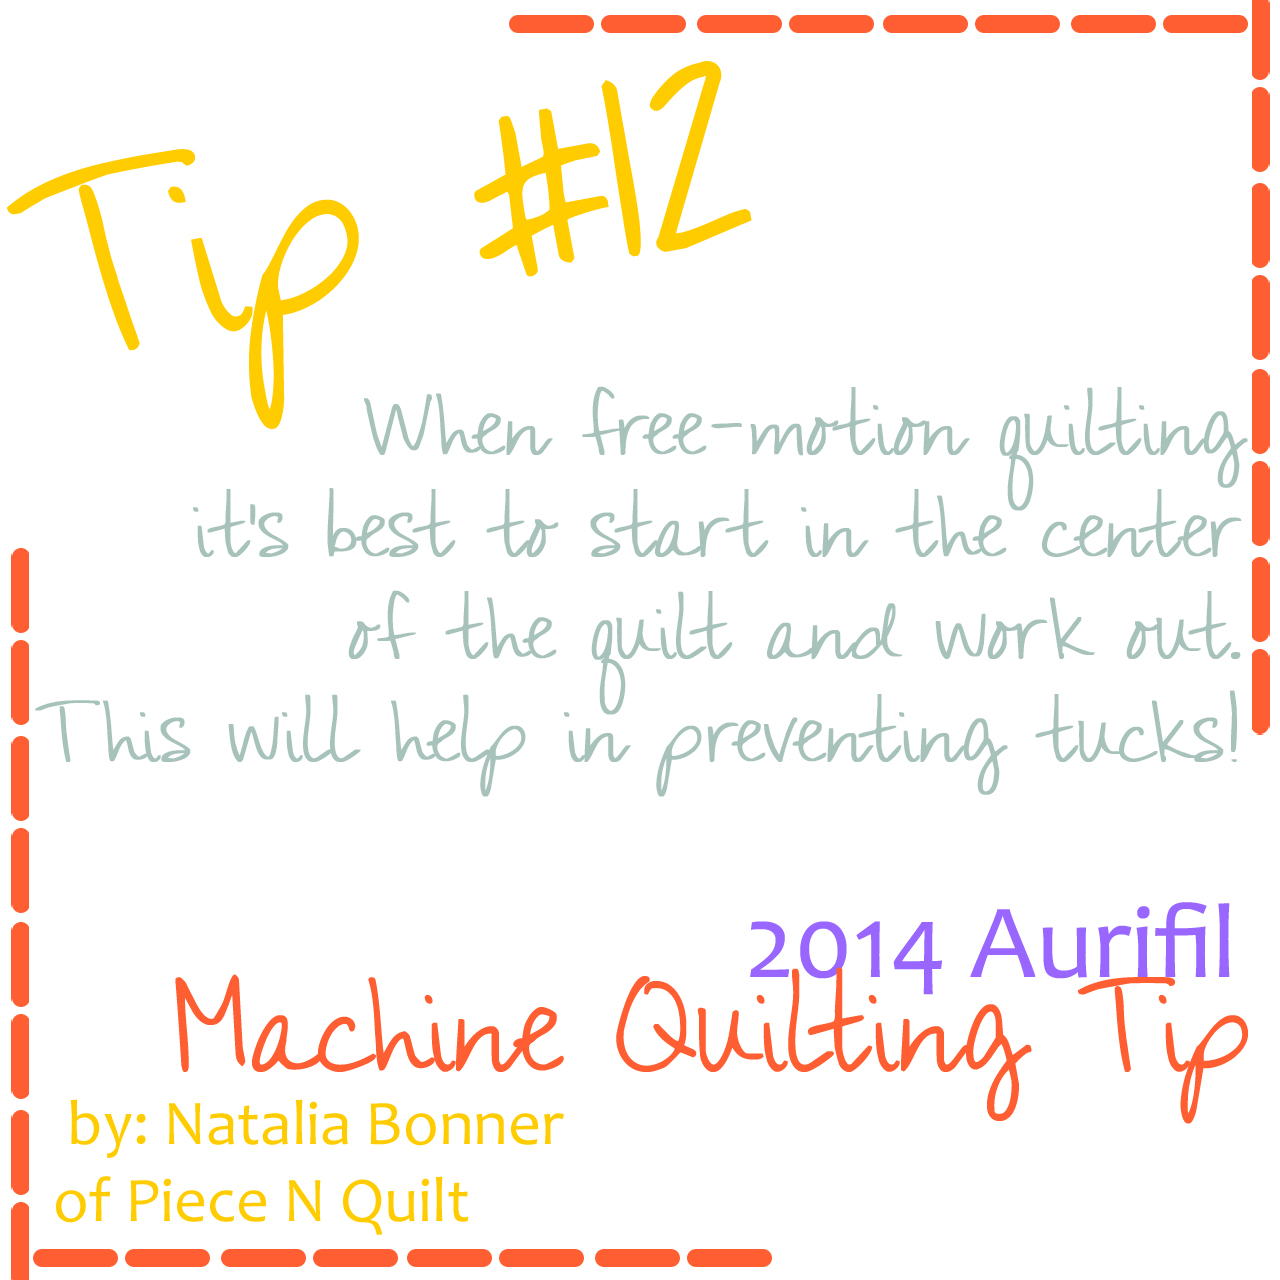 machine quilting tip for aurifil number 12